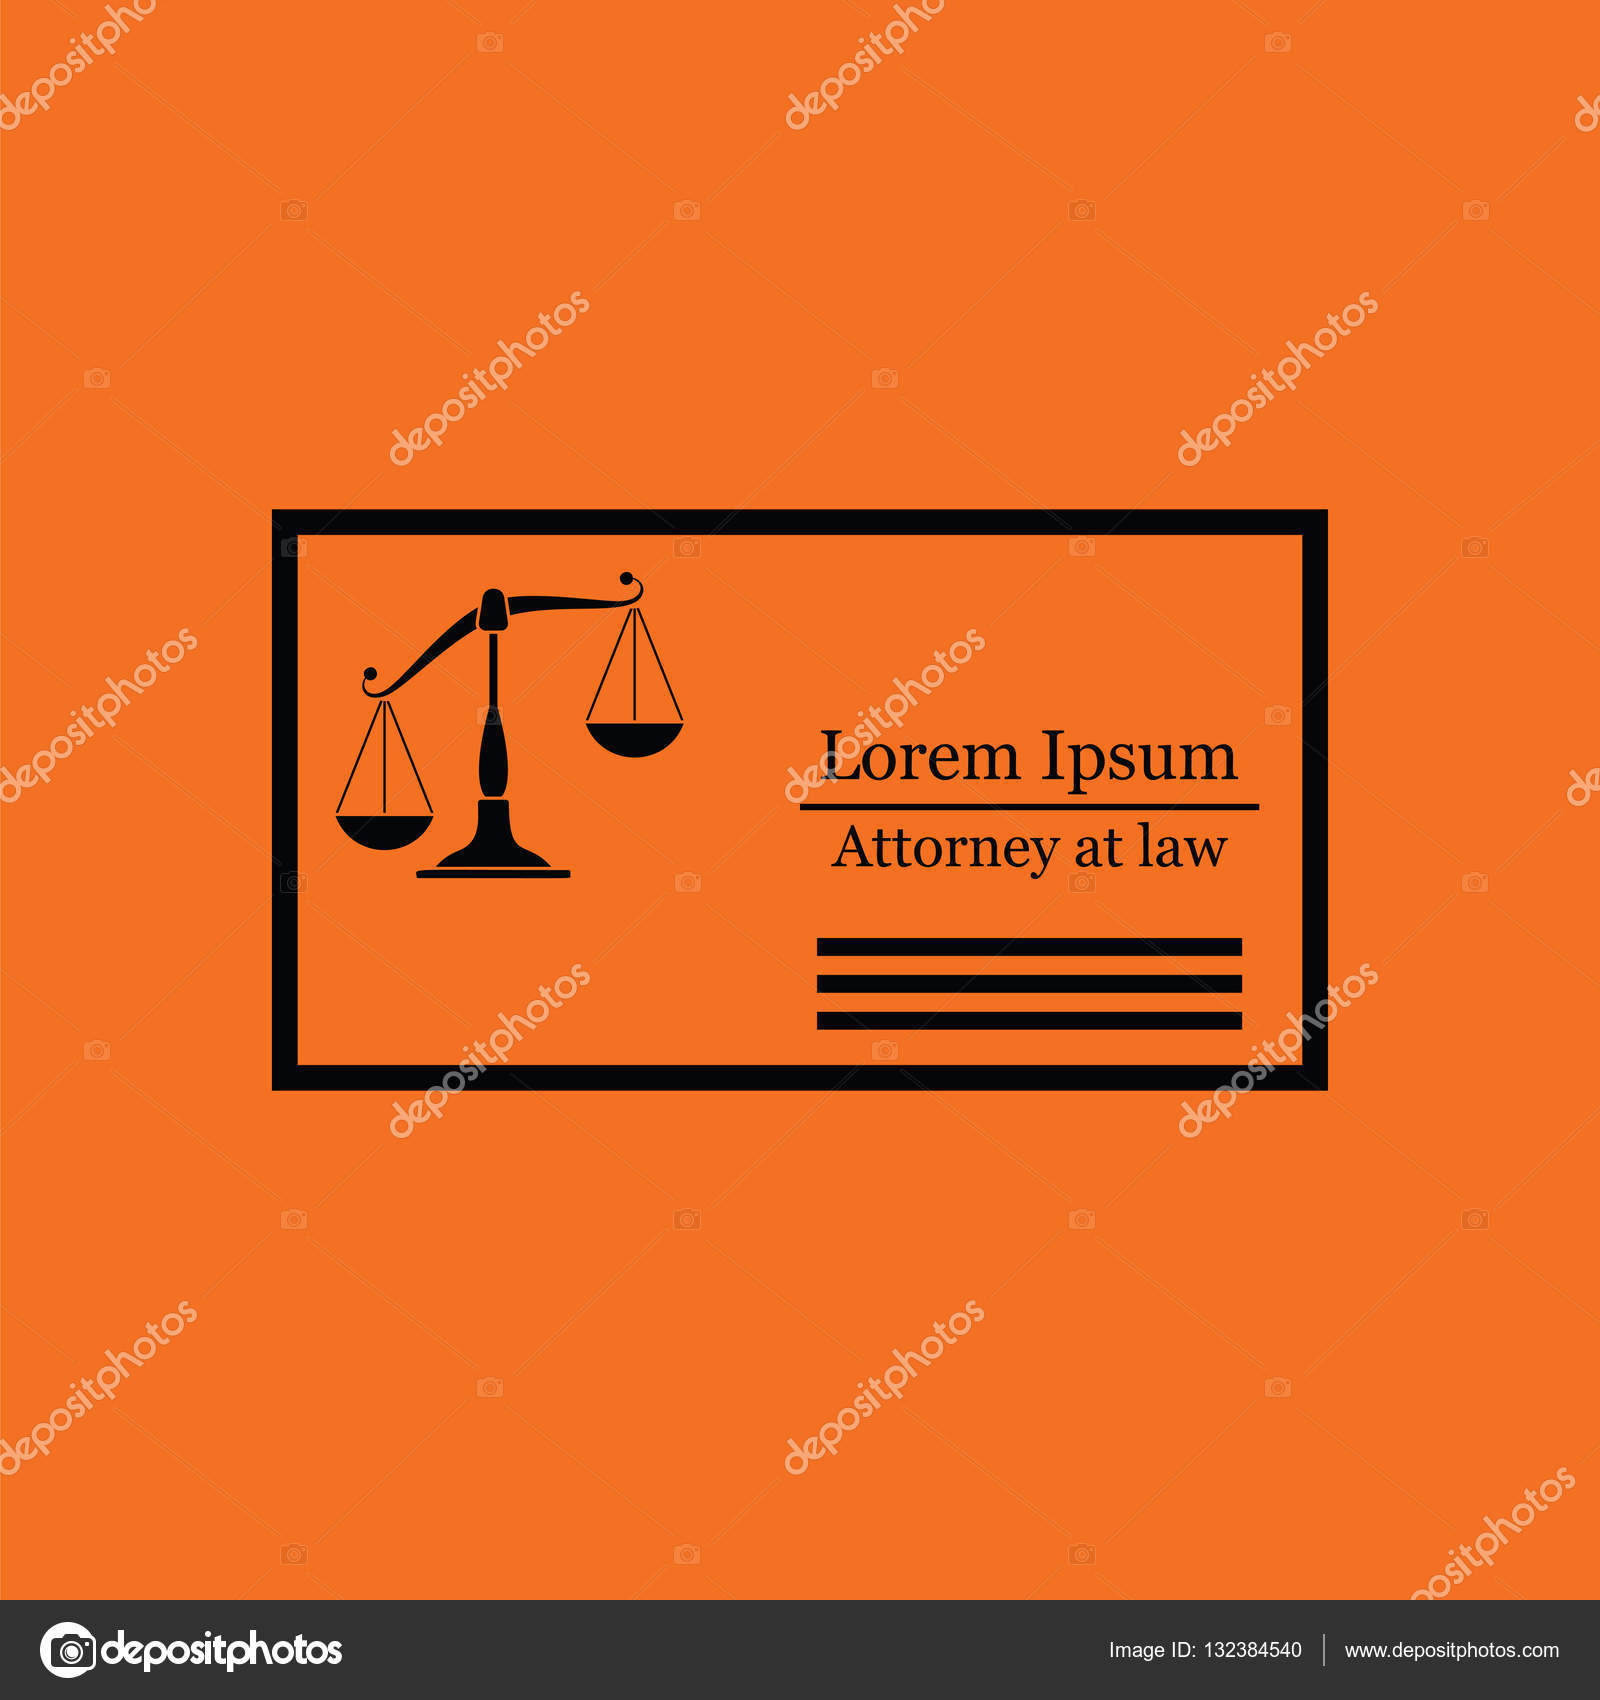 Lawyer business card icon — Stock Vector © angelp #132384540